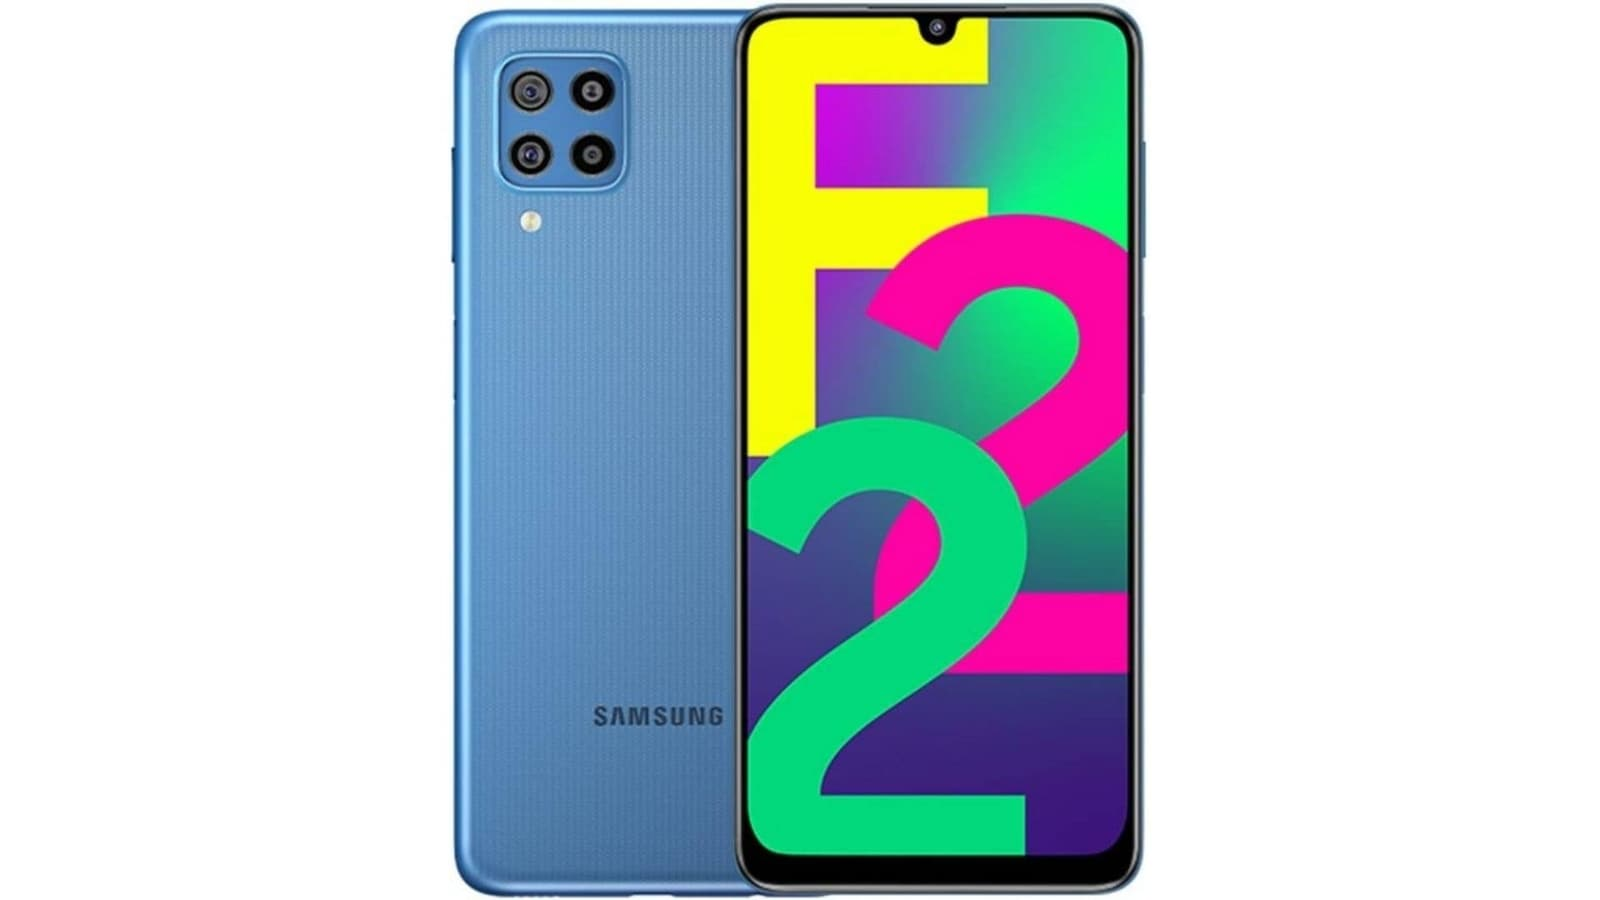 The Samsung Galaxy F22 is on sale from today;  find out the price and specifications here